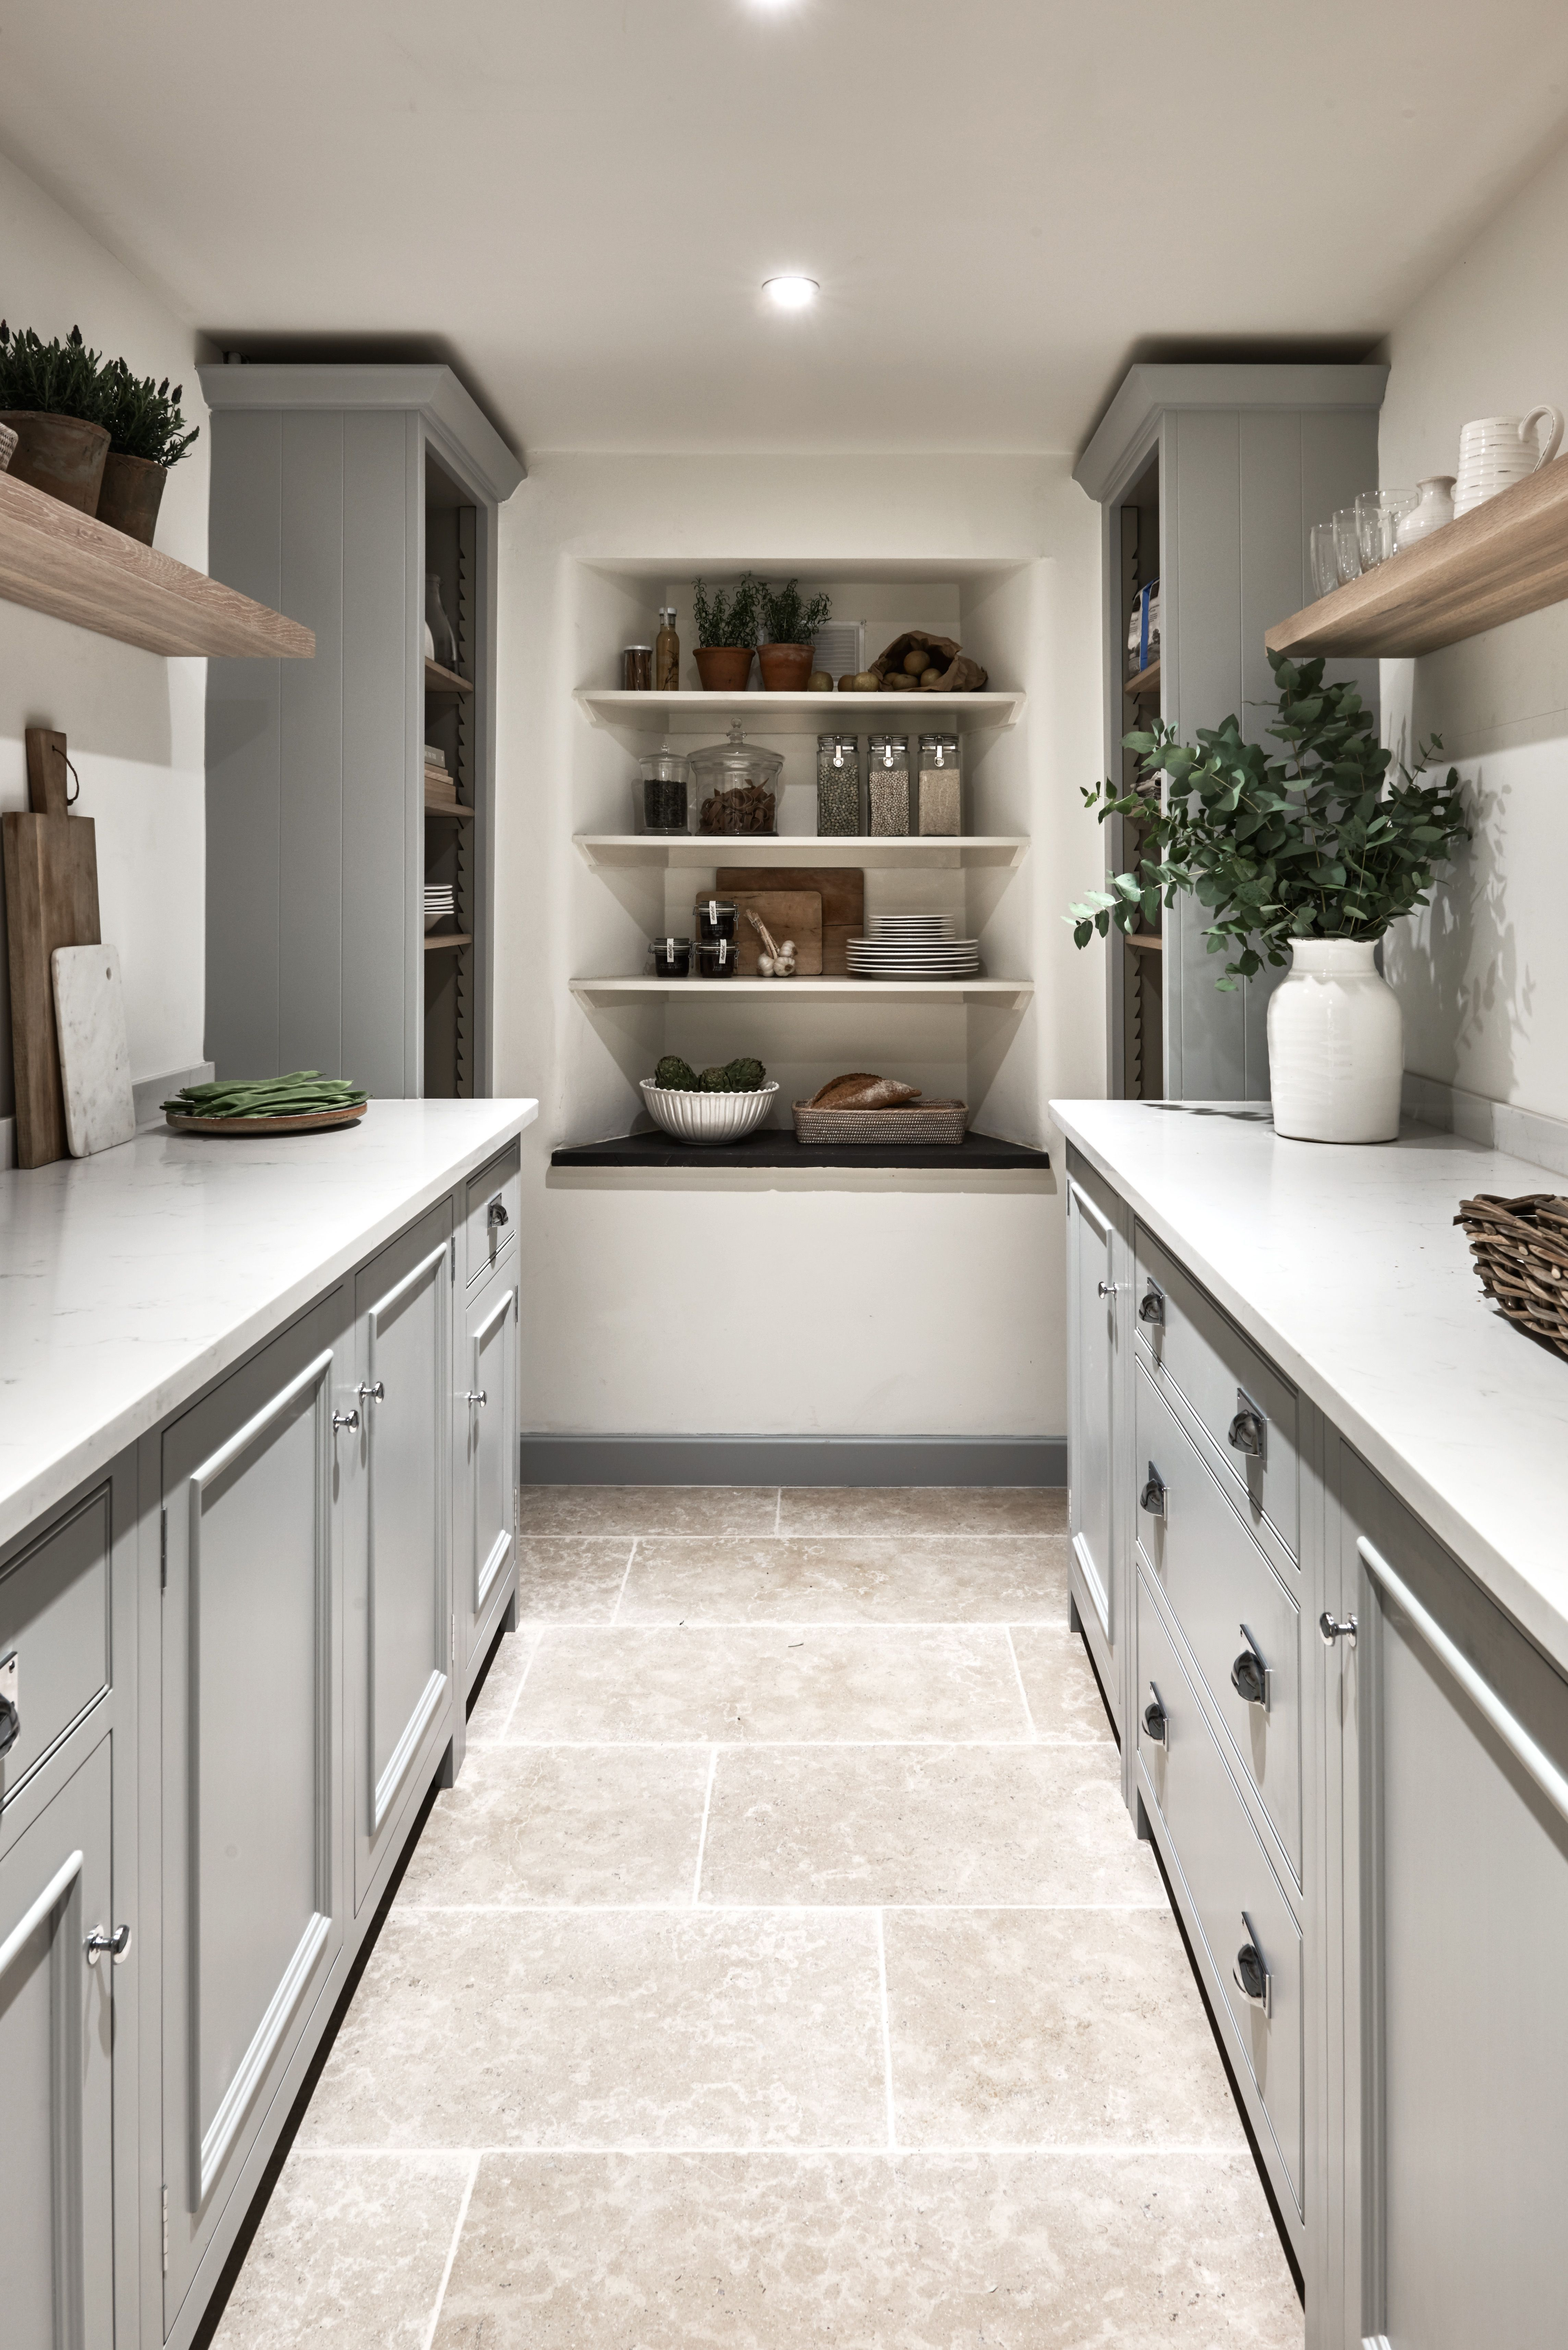 Kitchen designed by sims hilditch for the cotswold country house kitchendesignhd also rh pinterest